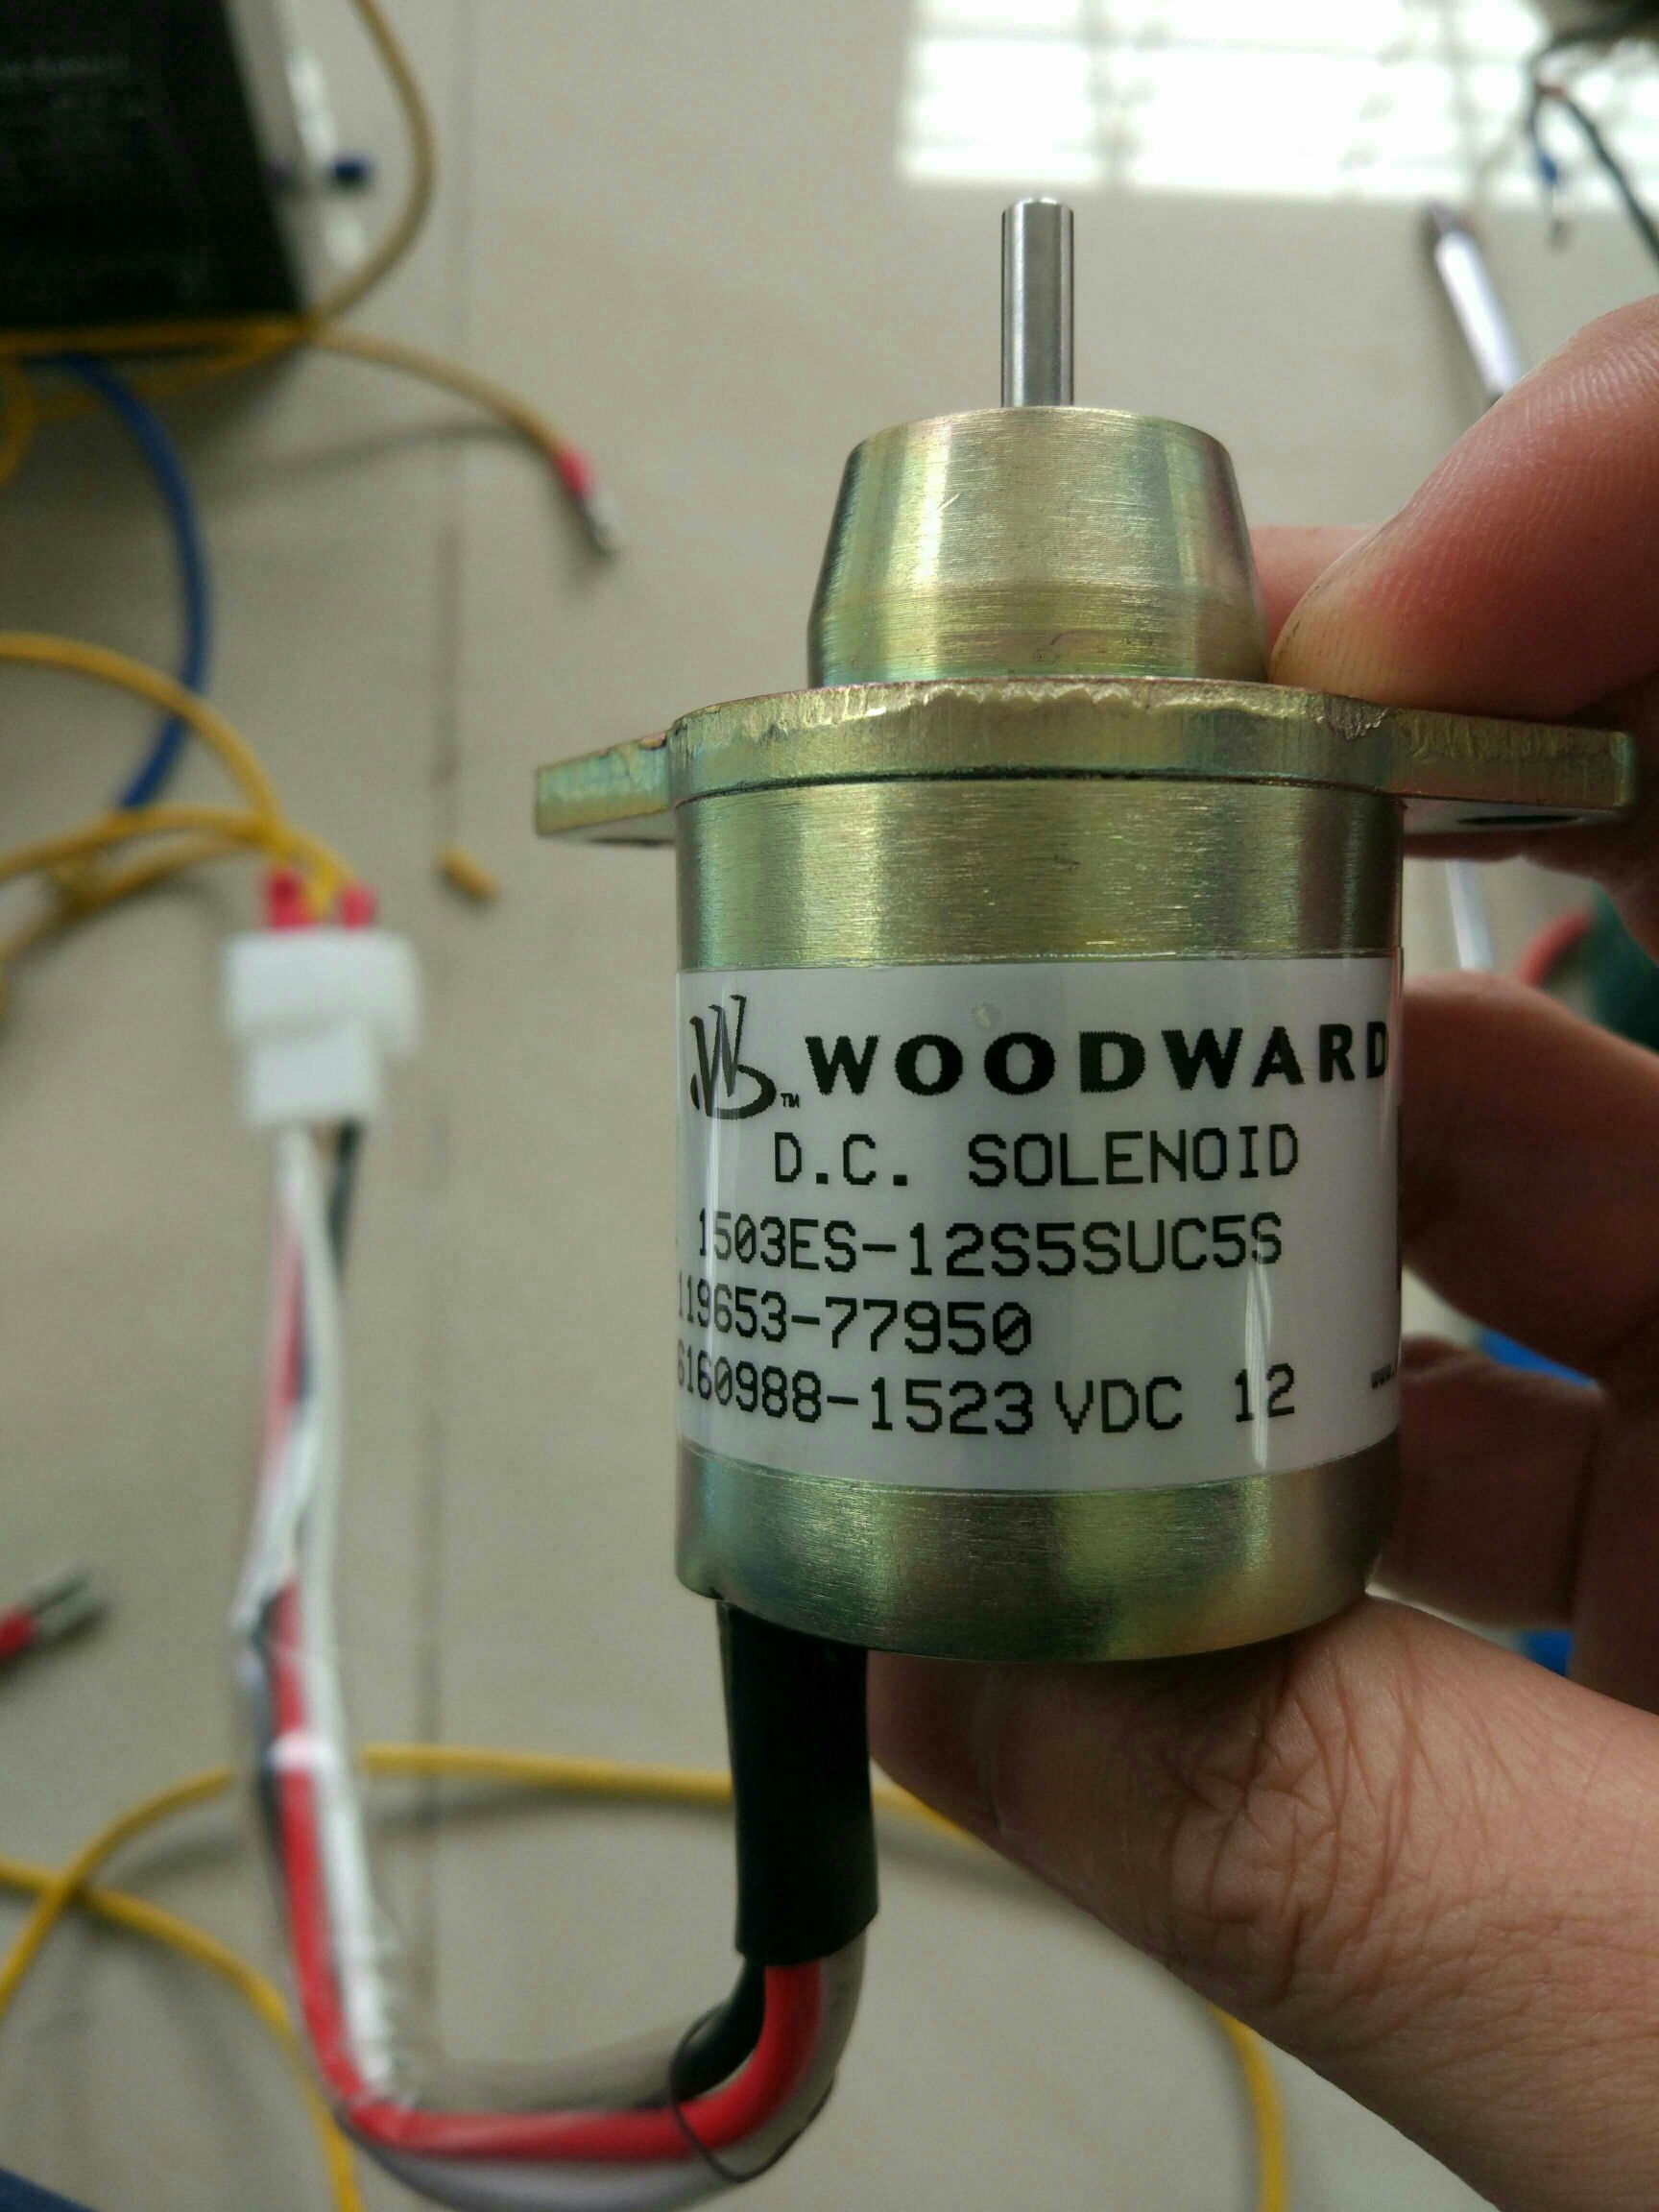 3779c8a0c54e023cb20615f8124172c7 fuel stop solenoid woodward electrician talk professional woodward solenoid wiring diagram at gsmx.co